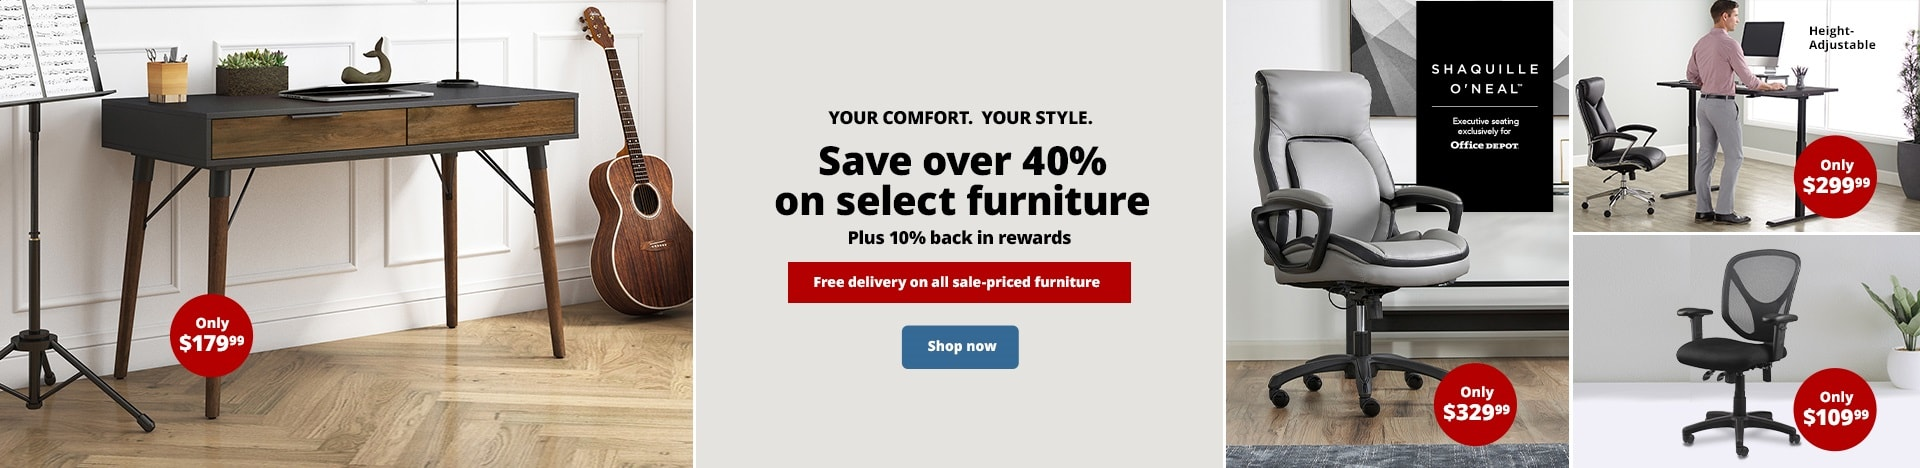 Save over 40% on select furniture. Plus 10% back in rewards. Free delivery on all sale-priced furniture